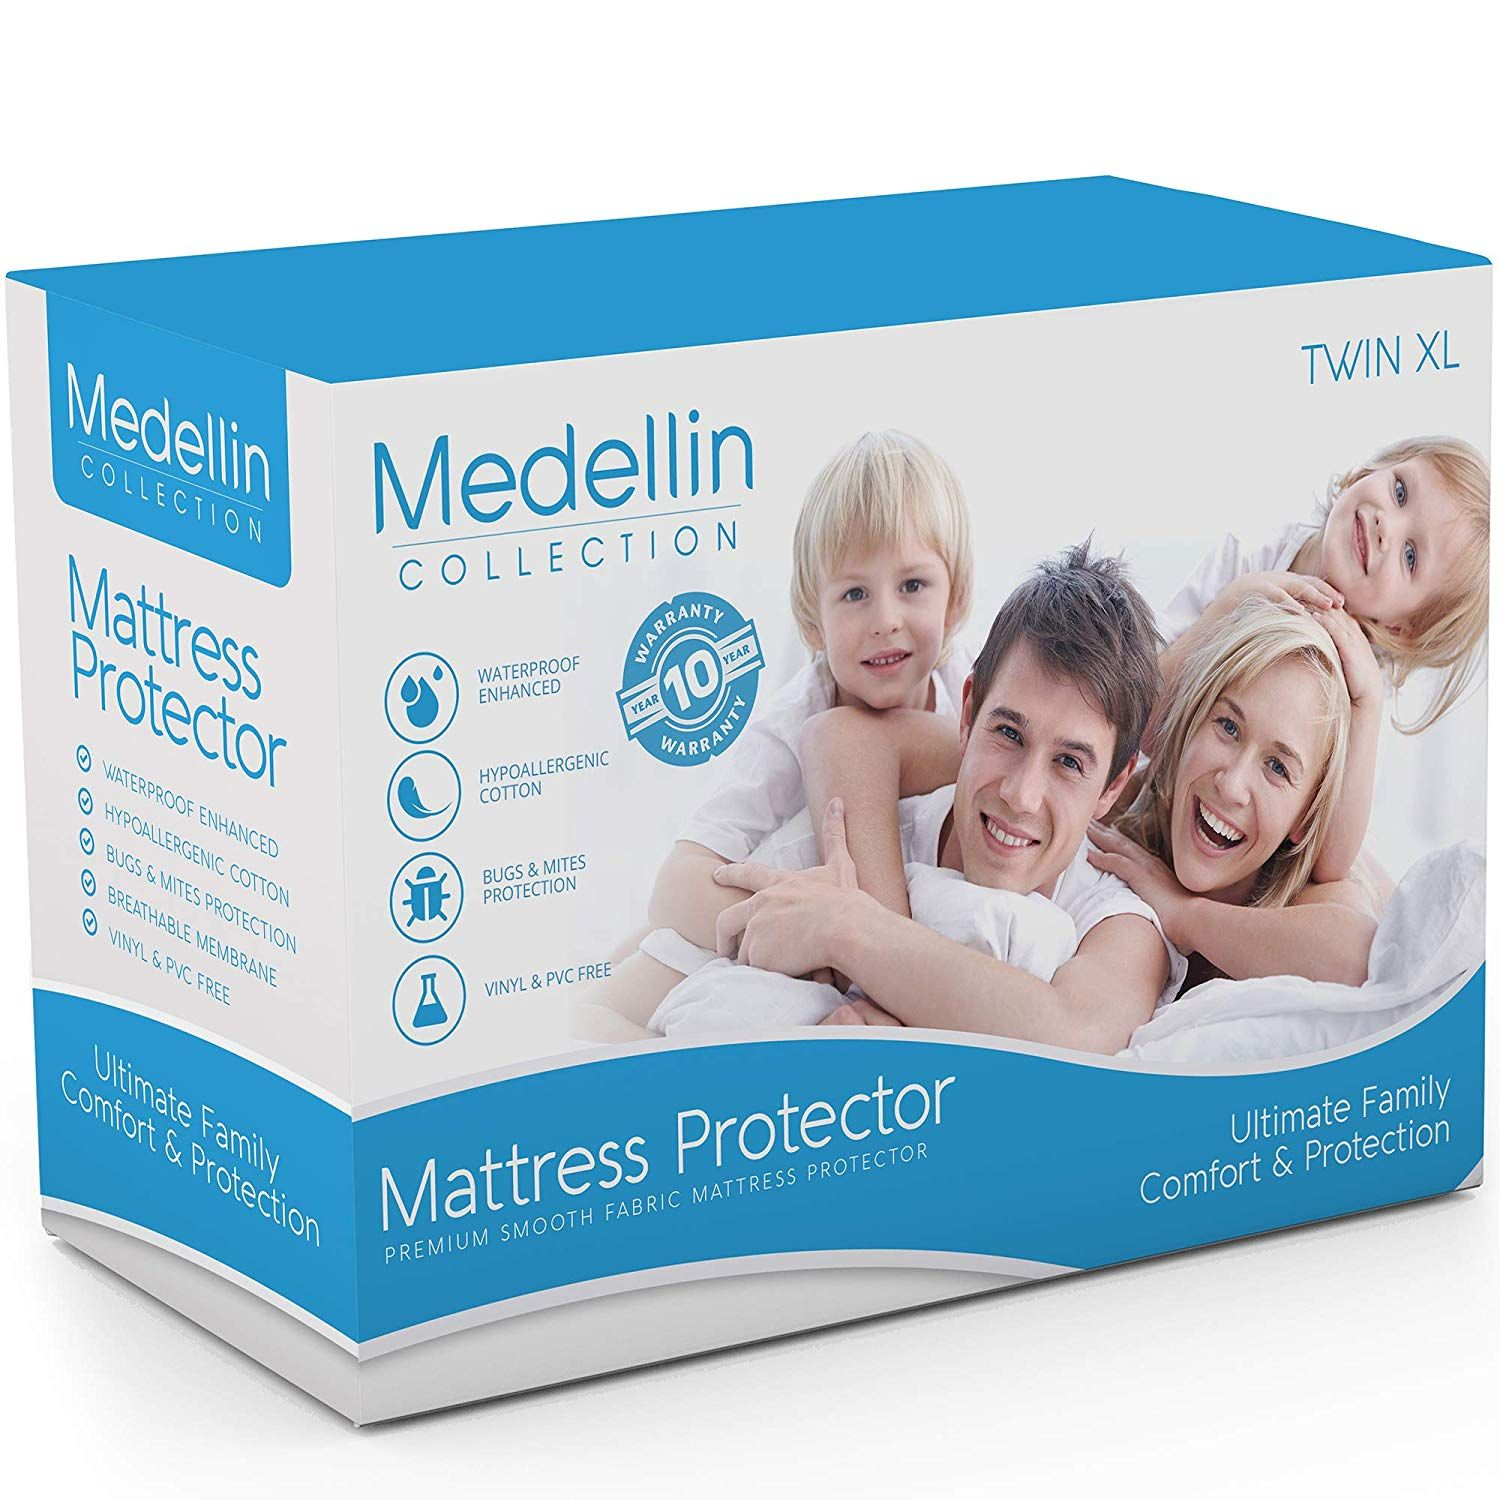 Best Mattress Protector Collection Buy Only The Best Mattress Protector And Make Your Life Eas Mattress Protector Waterproof Mattress Queen Mattress